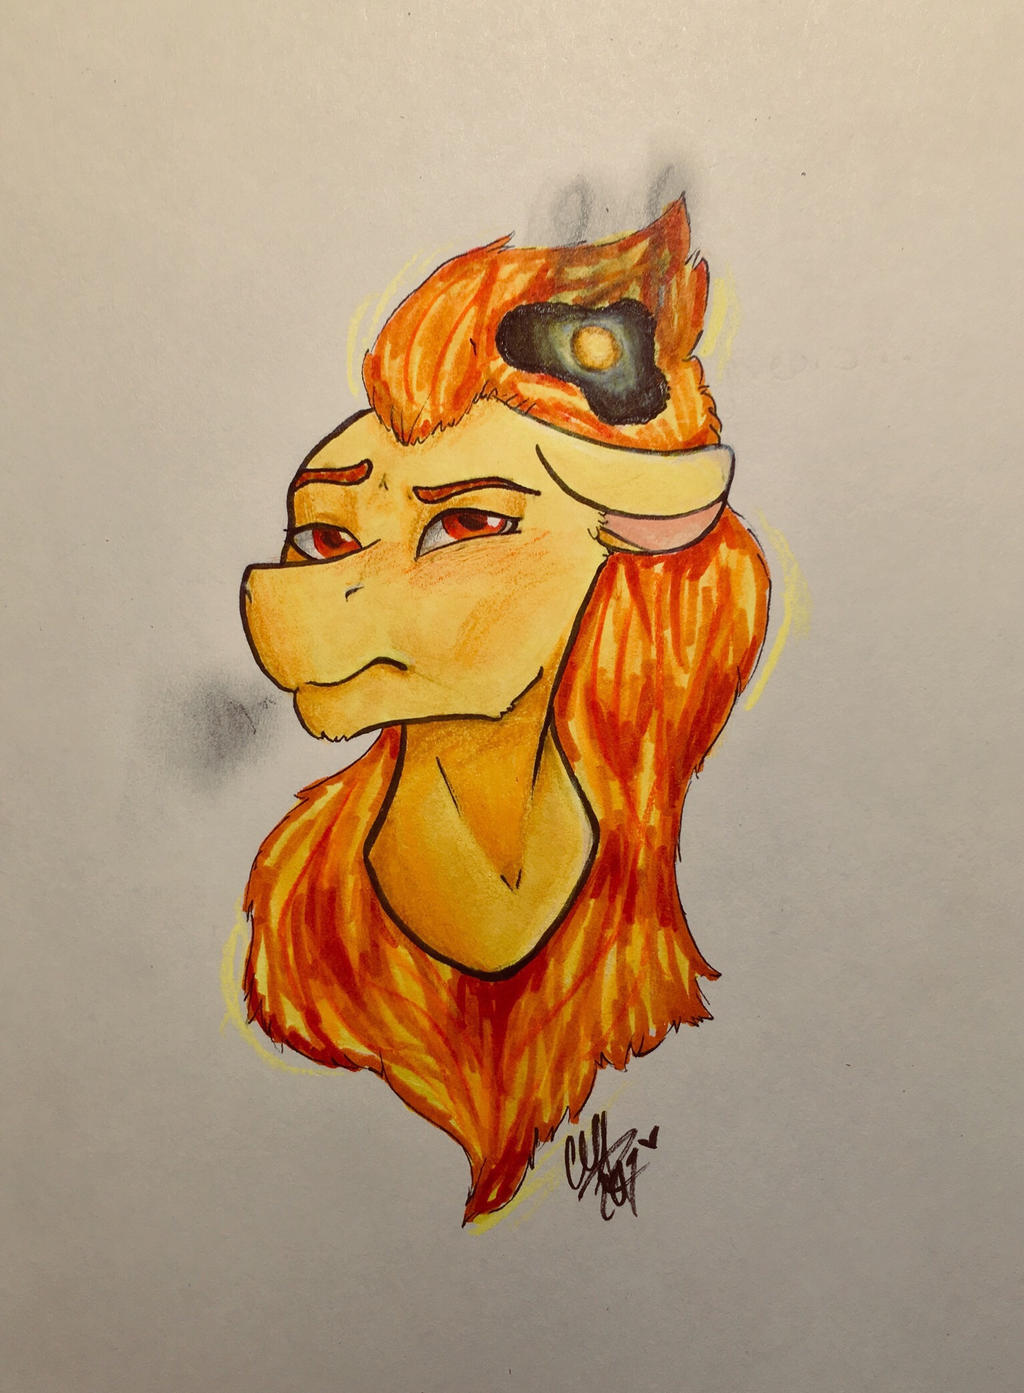 Burnt Egg || Contest Prize by Snerdsister